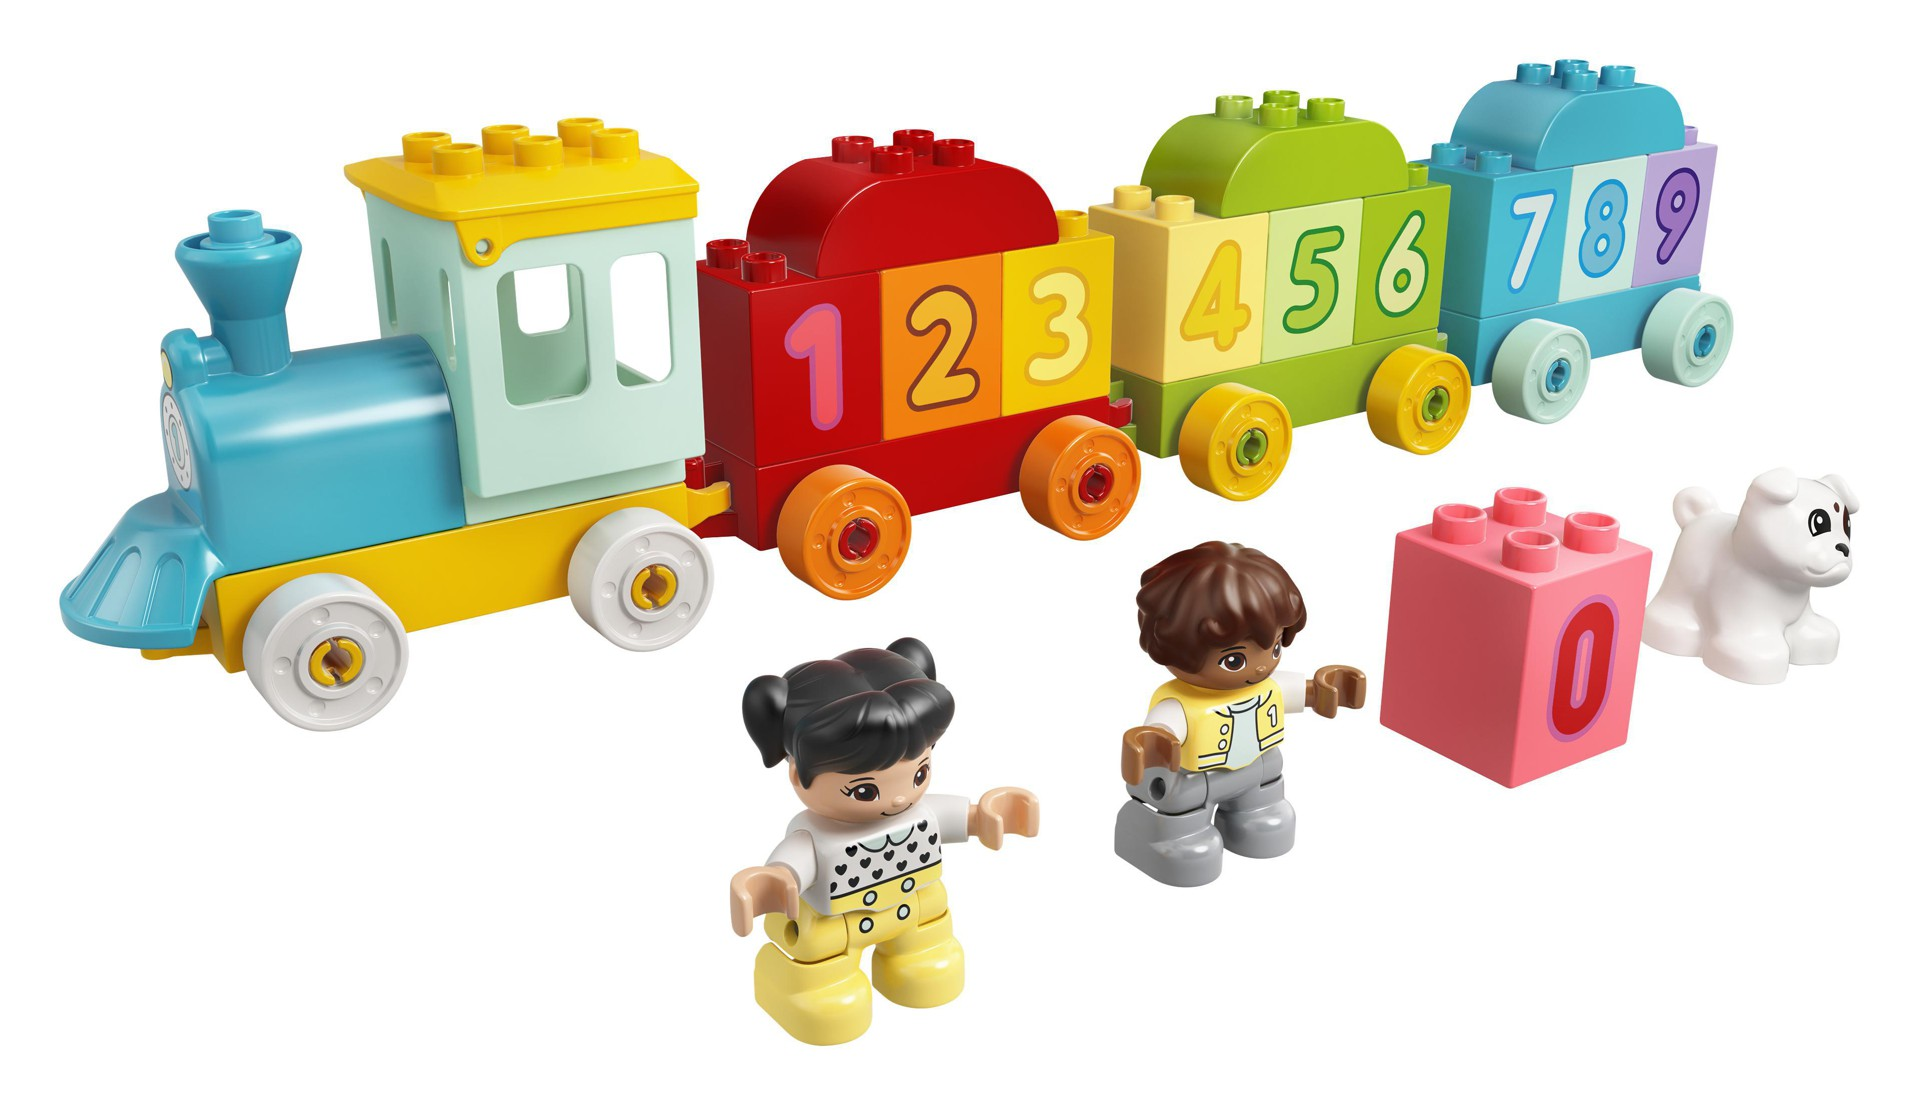 Duplo Number Train - Learn to count